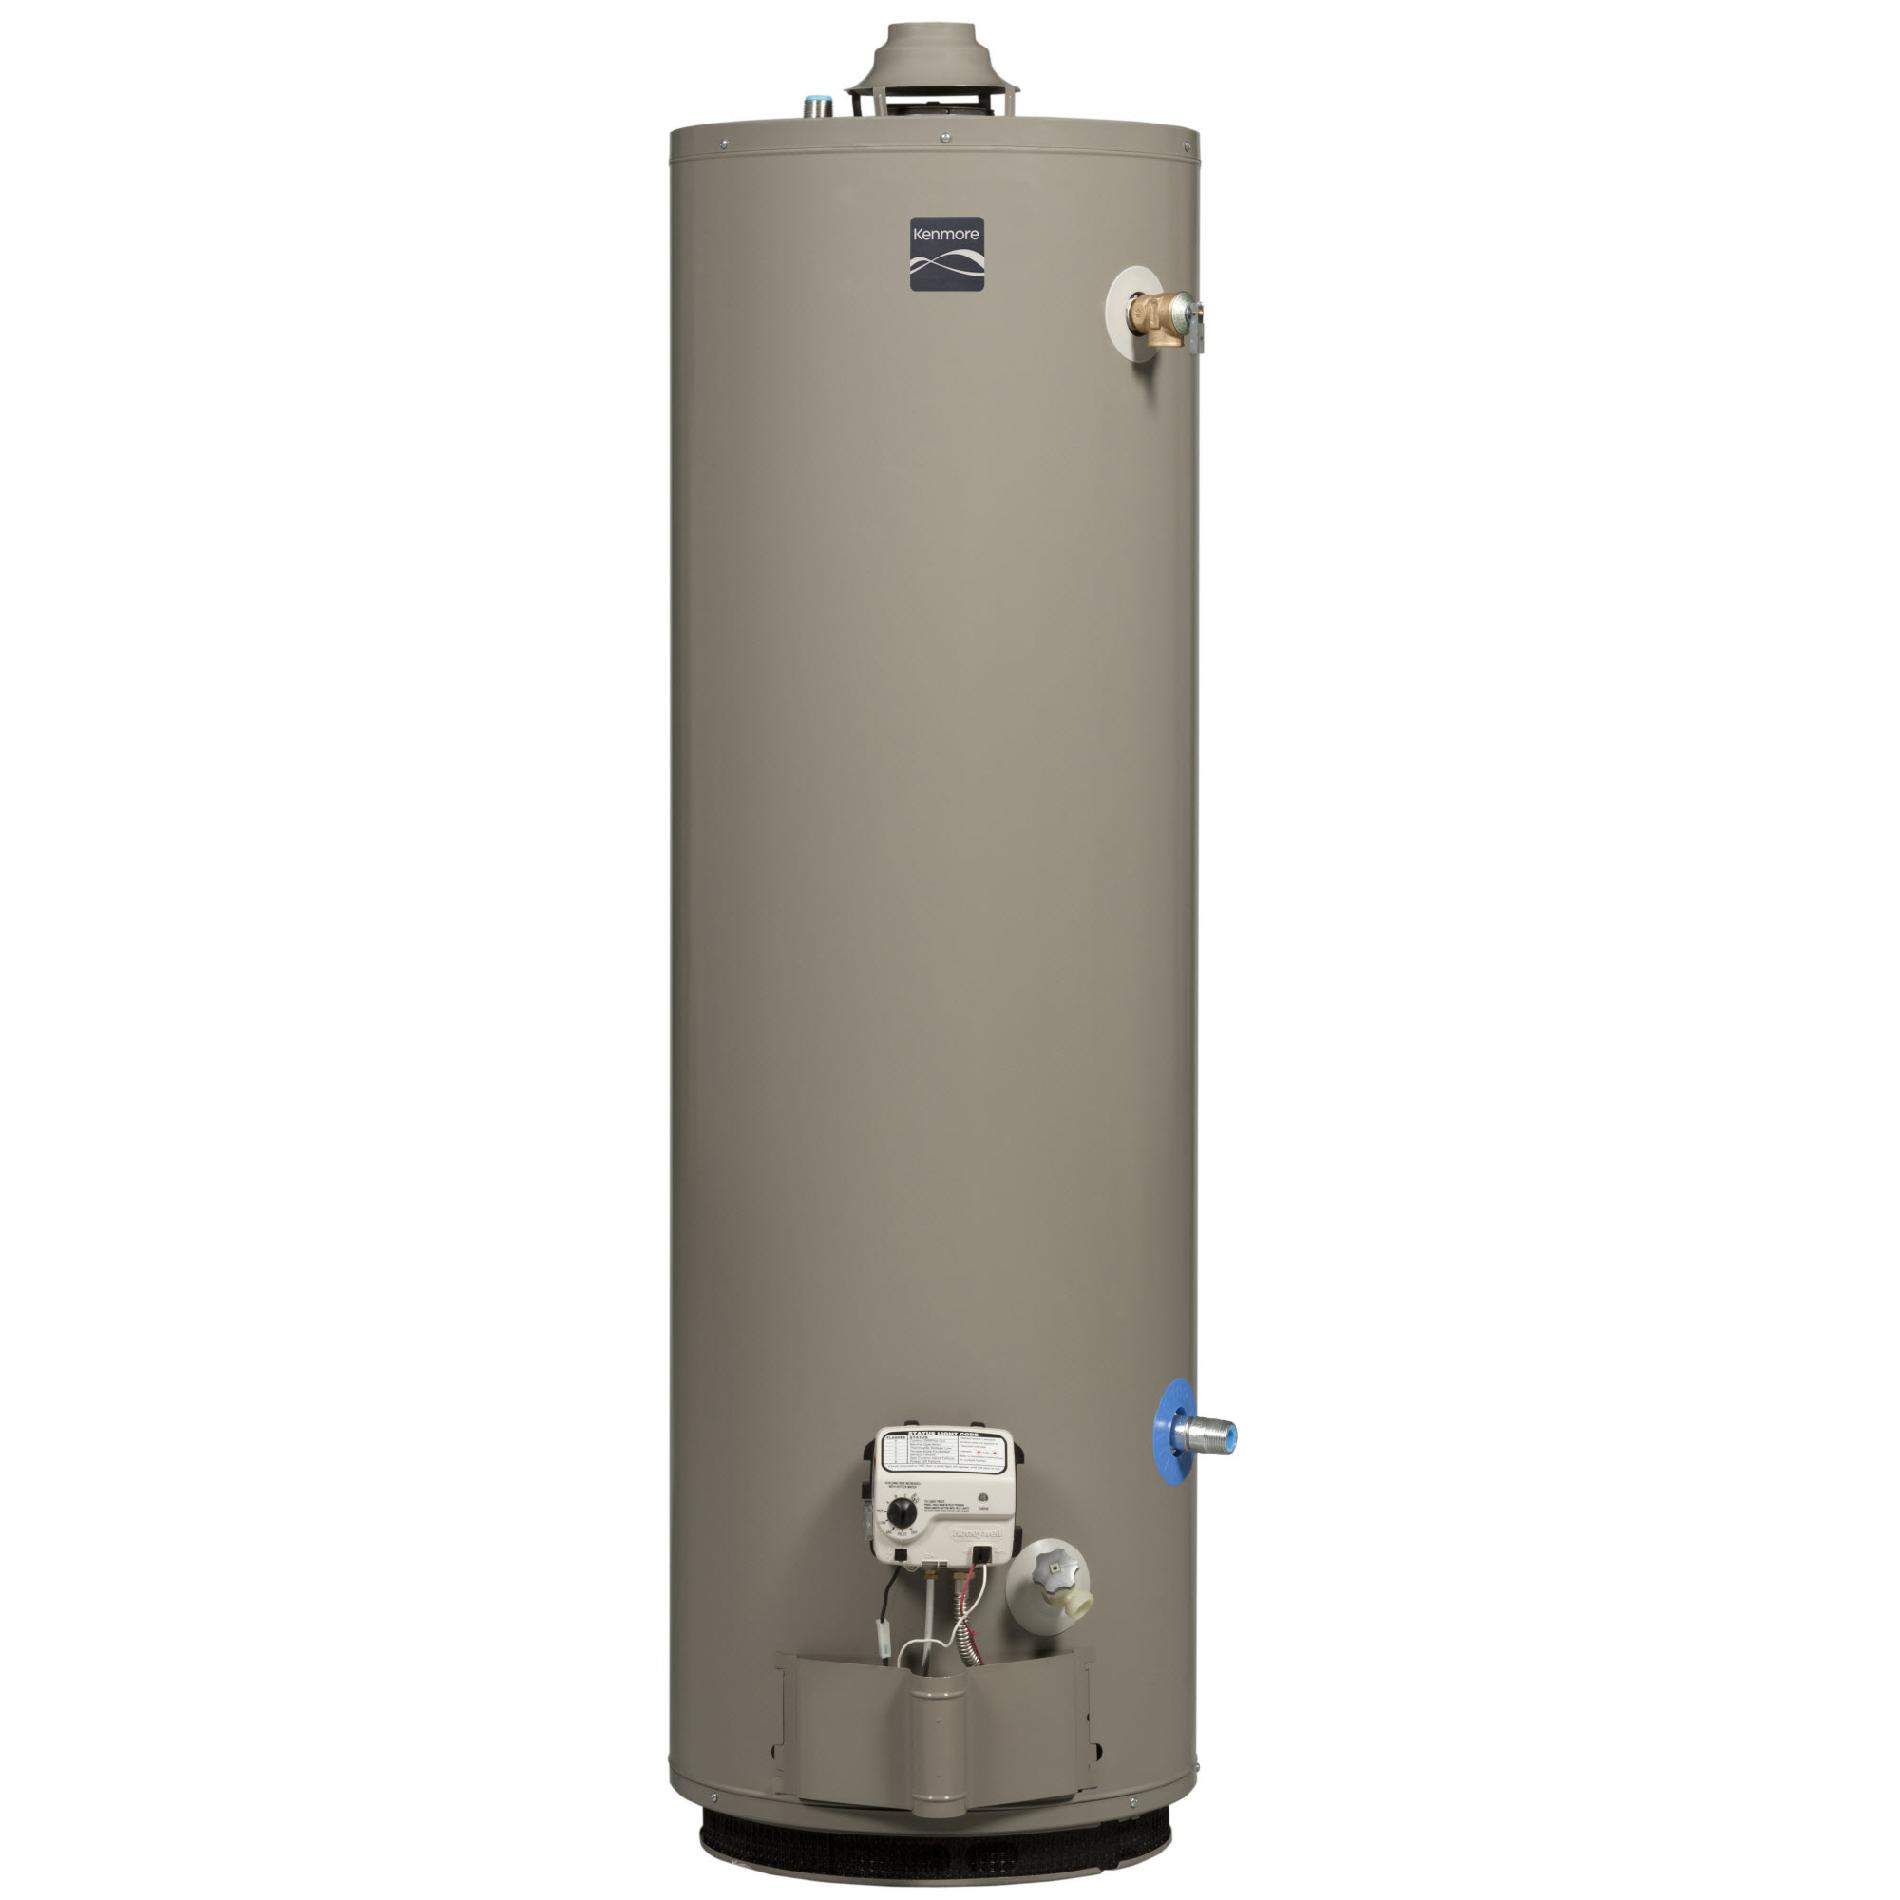 Water Heater Repair Amp Maintenance Services Offered By